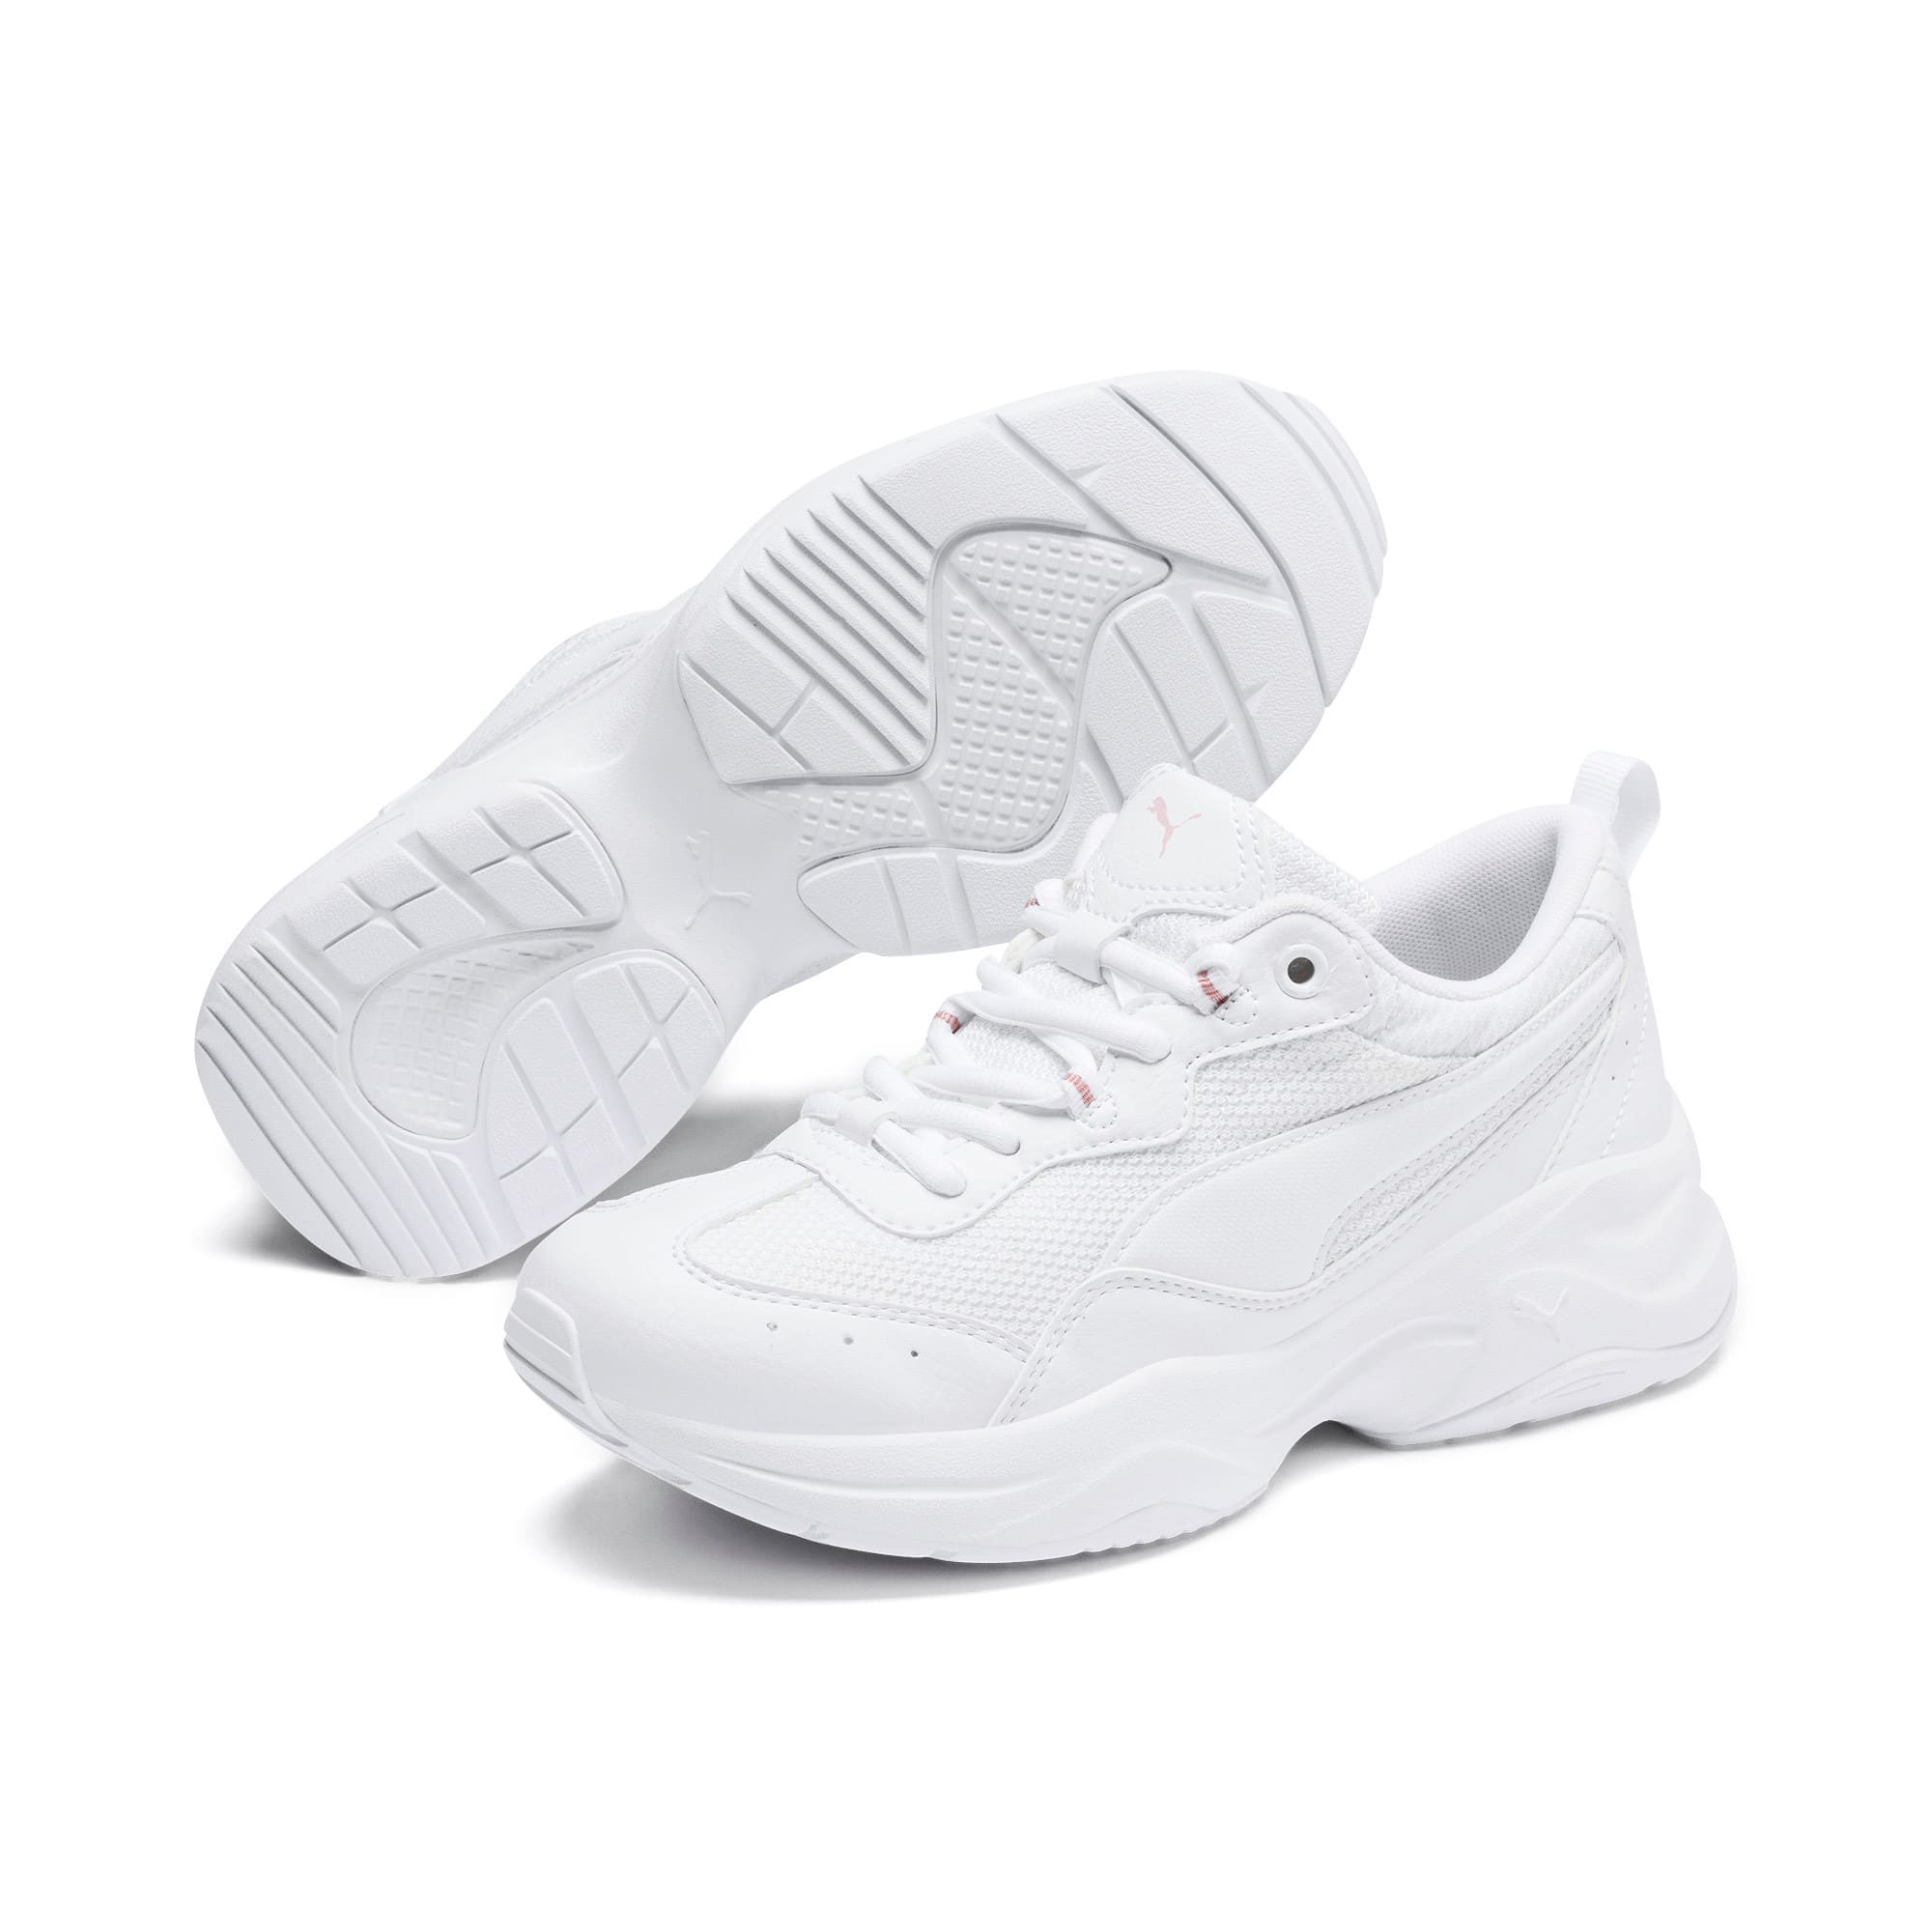 Thumbnail 2 of Cilia Youth Trainers, Puma White-Bridal Rose, medium